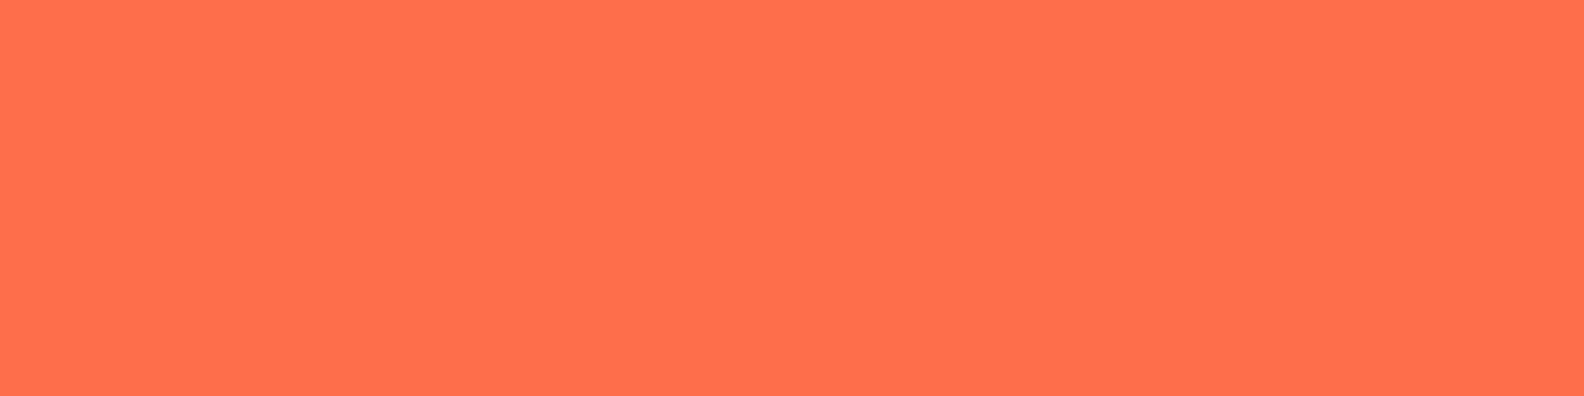 1584x396 Outrageous Orange Solid Color Background